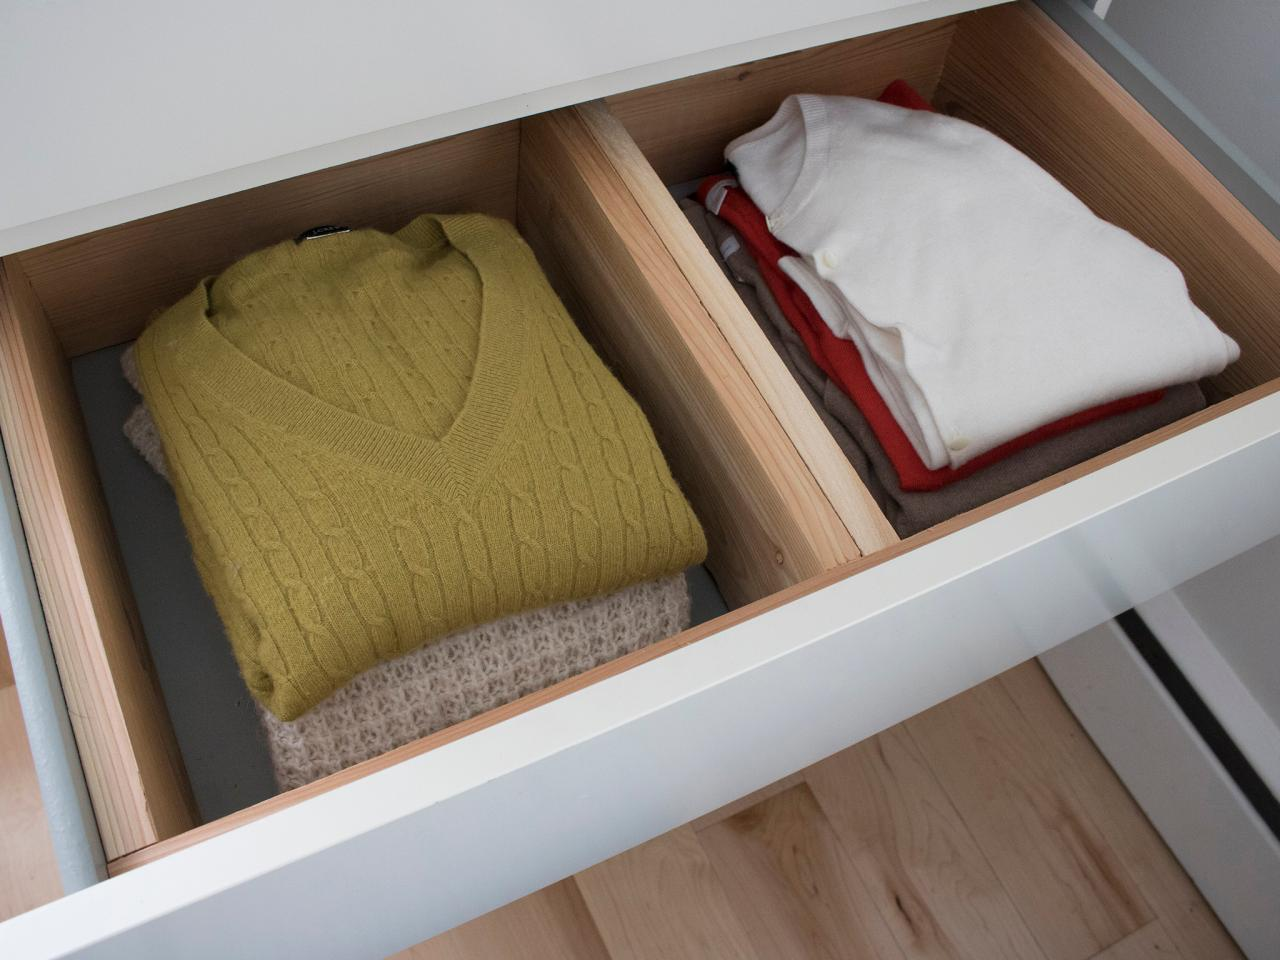 Picture of: Best Drawer Organizer For Clothes